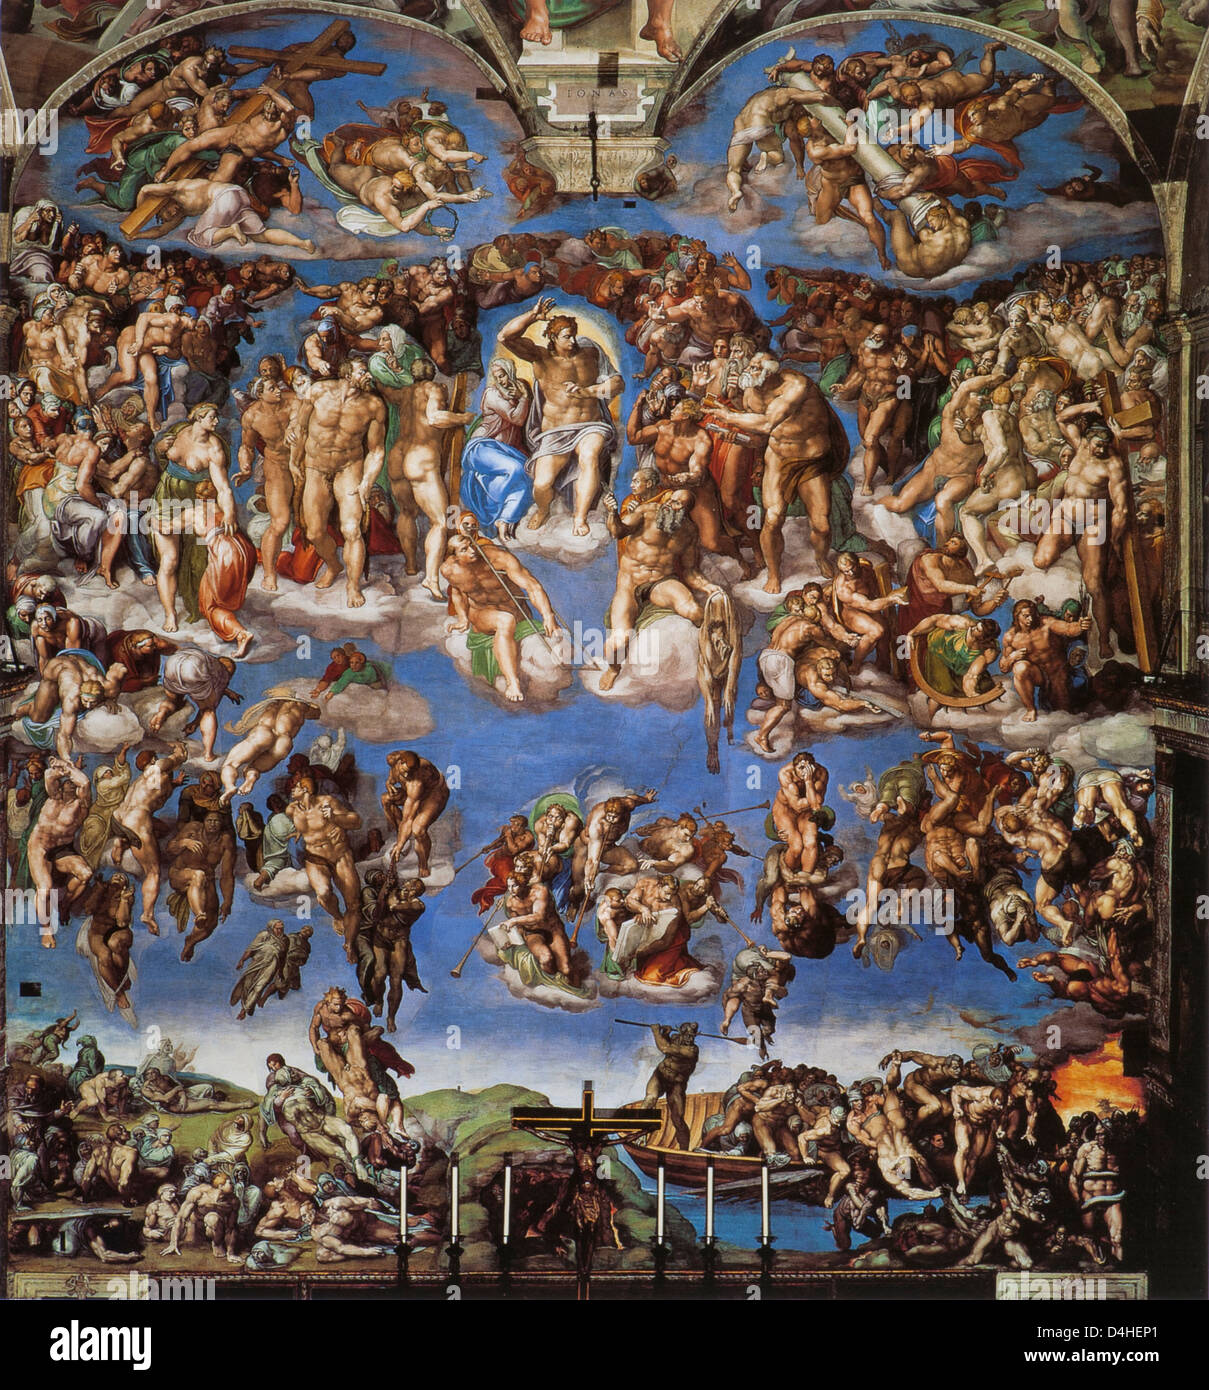 The Last Judgment, 1537-41 by Michelangelo at the Sistine Chapel, Saint Peter's, Rome - Stock Image